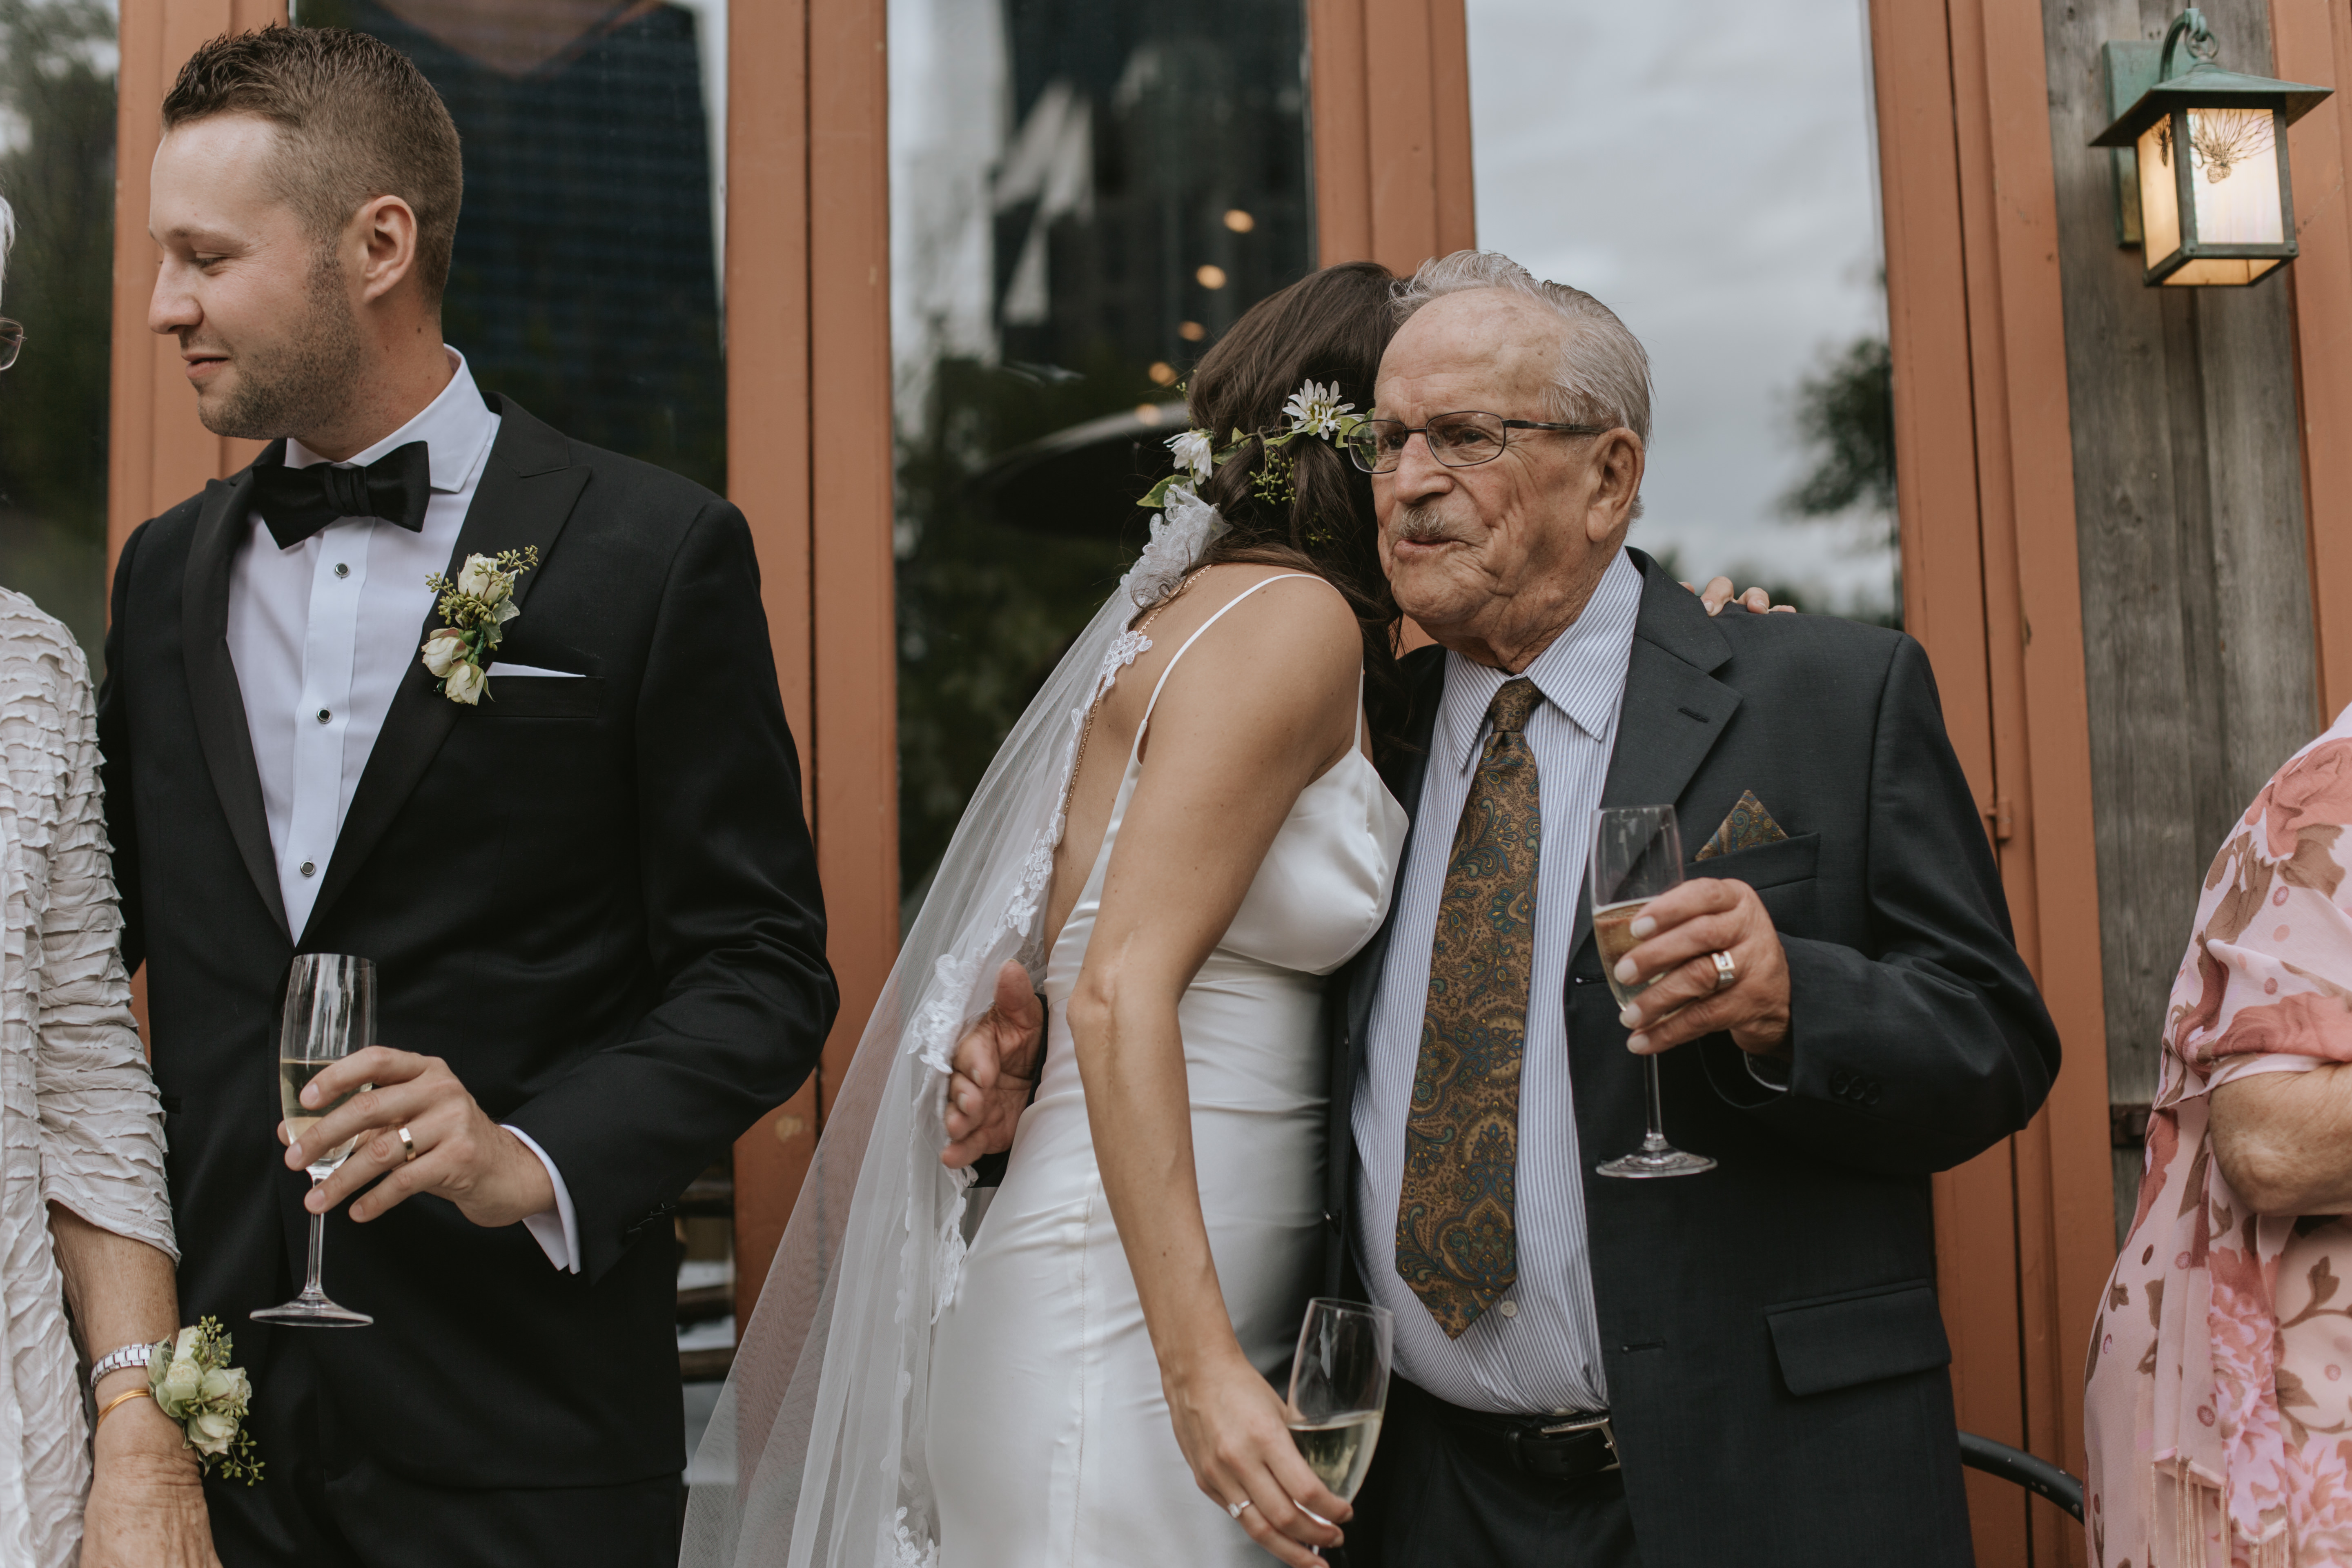 the bride hugs her grandfather